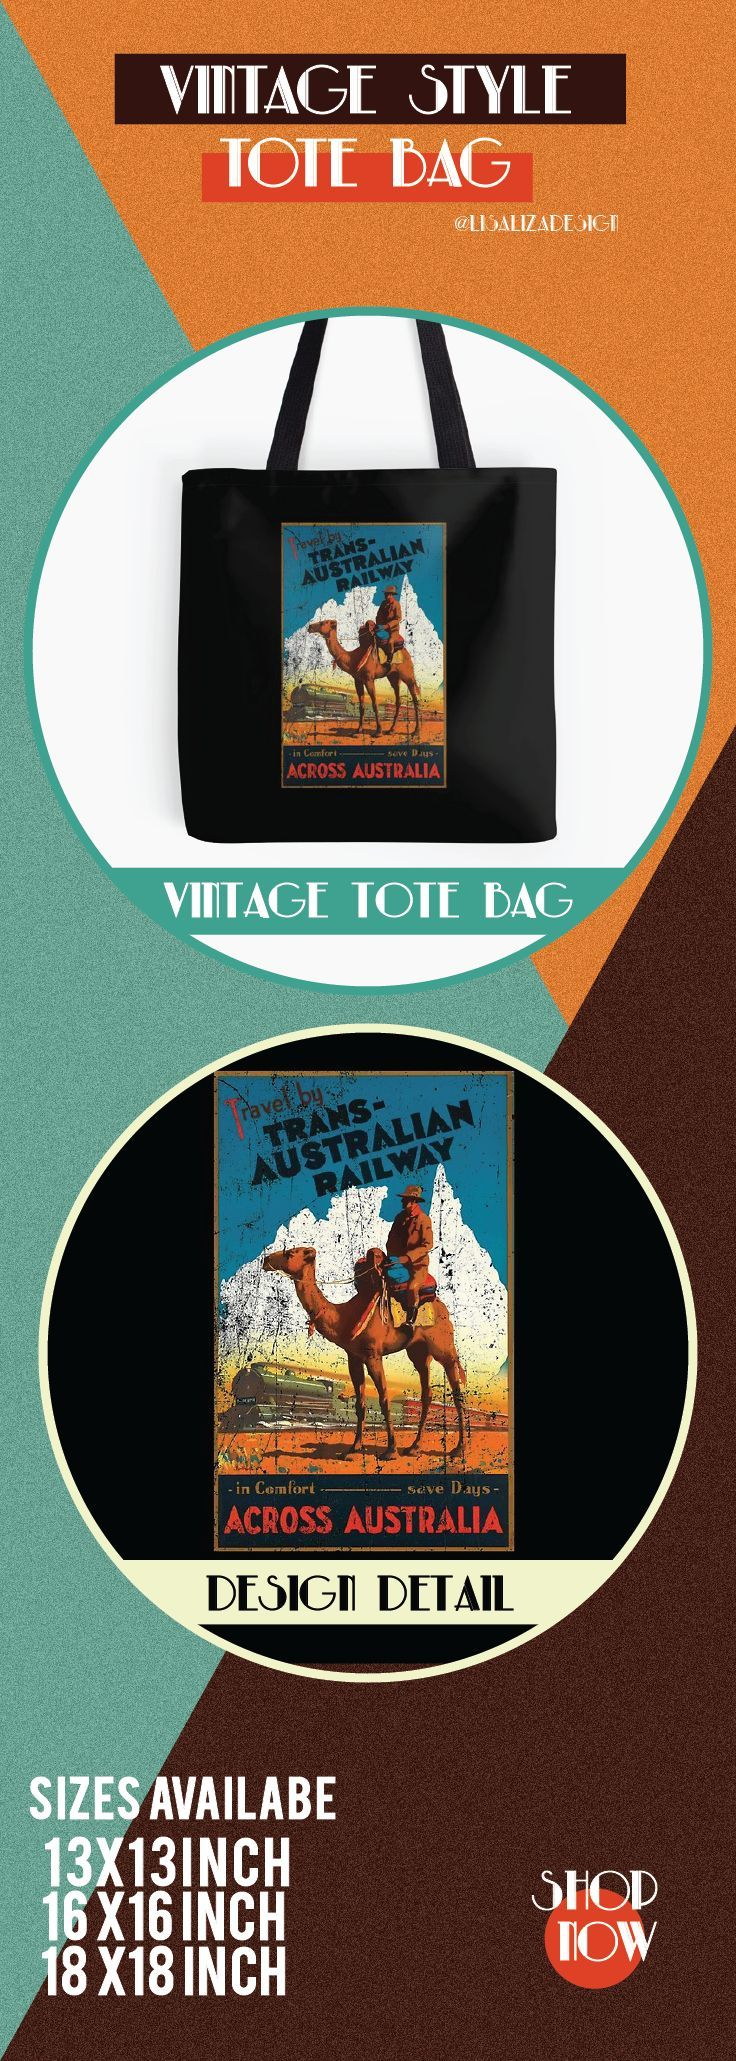 Vintage Travel Poster, Aged and Weathered - Australia.  ToteBags  A collection design inspired by vintage travel and advertisements posters  from the late 19th century printed on durable tote bags. 3 Sizes available . Excellent gift ideas for vintage lovers and everyone. #vintage #hugs #holidaygift #oldies #homedecor #retro #travelposter #totebag #redbubble #teepublic #lisalizadesign #vintageposter #oldies